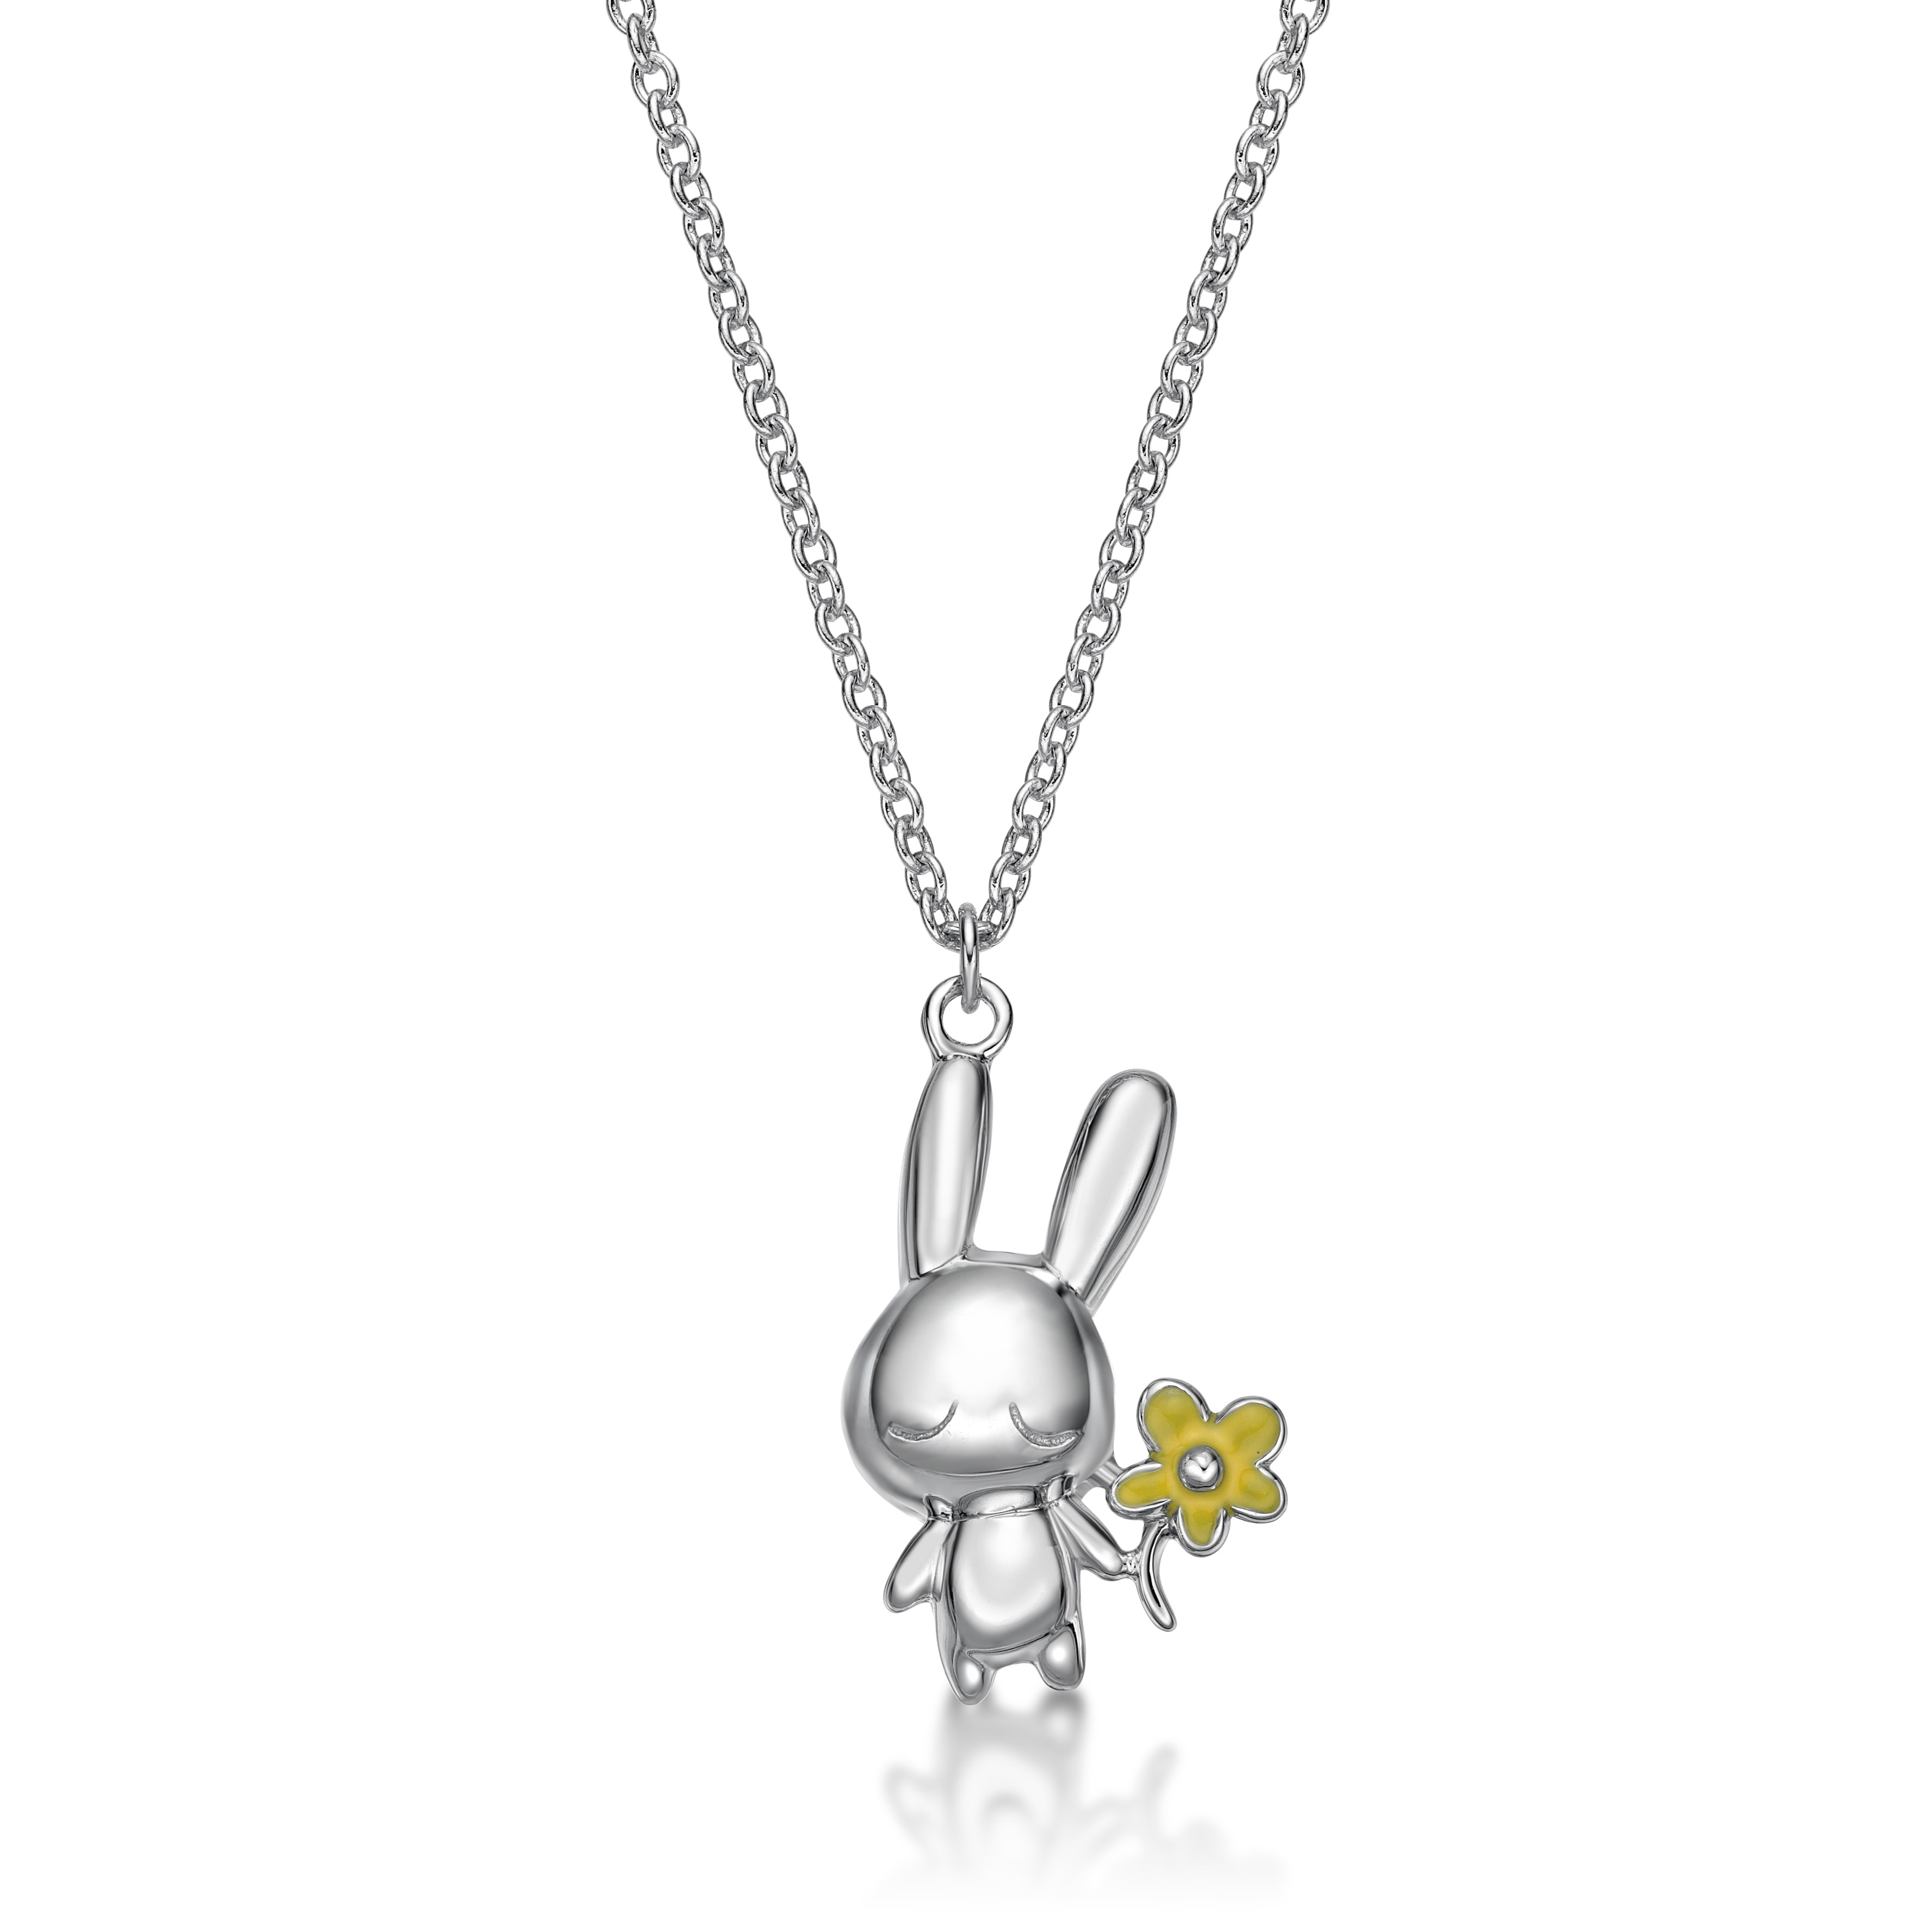 Rabbit C Icon & Flower Pendant With Necklace